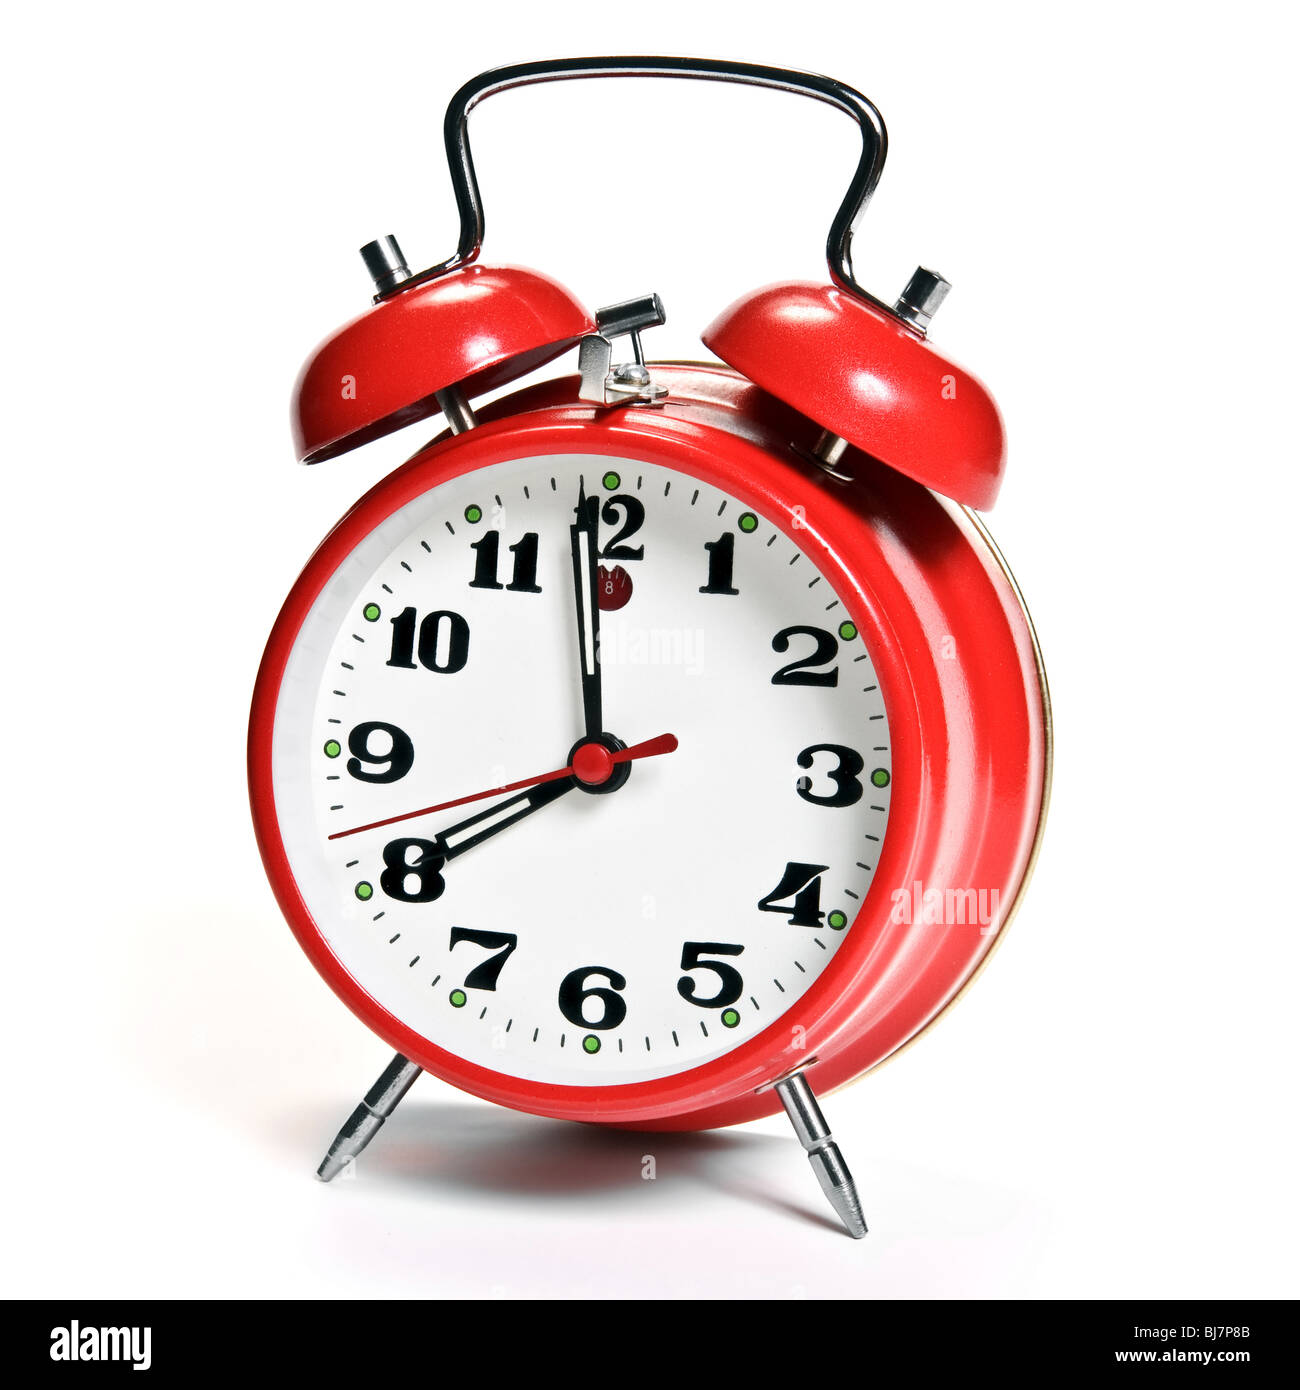 Red alarm clock isolated on white - Stock Image